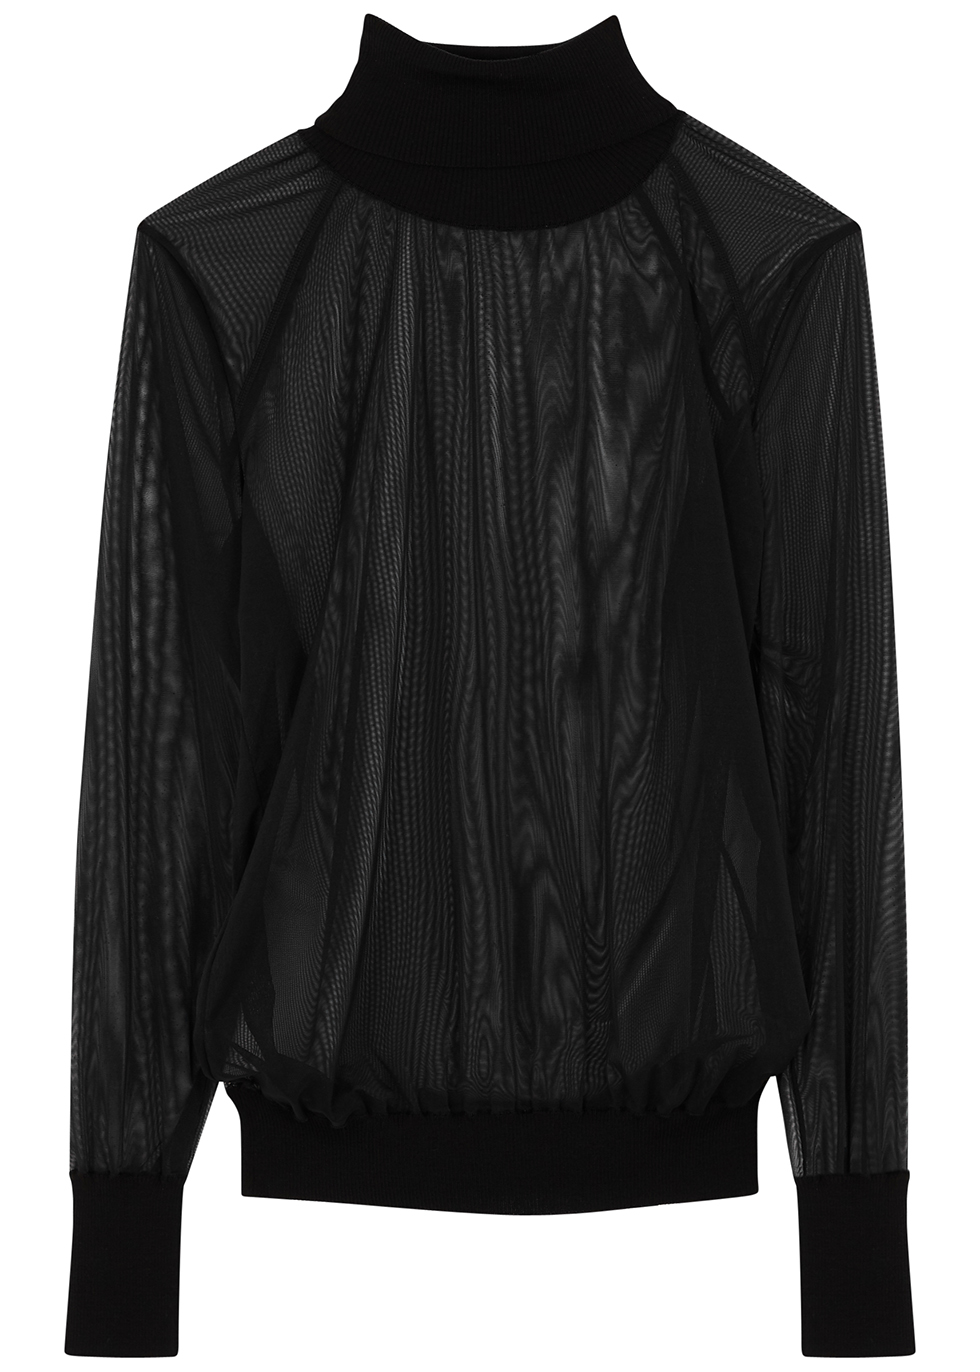 Tony black sheer stretch-tulle top